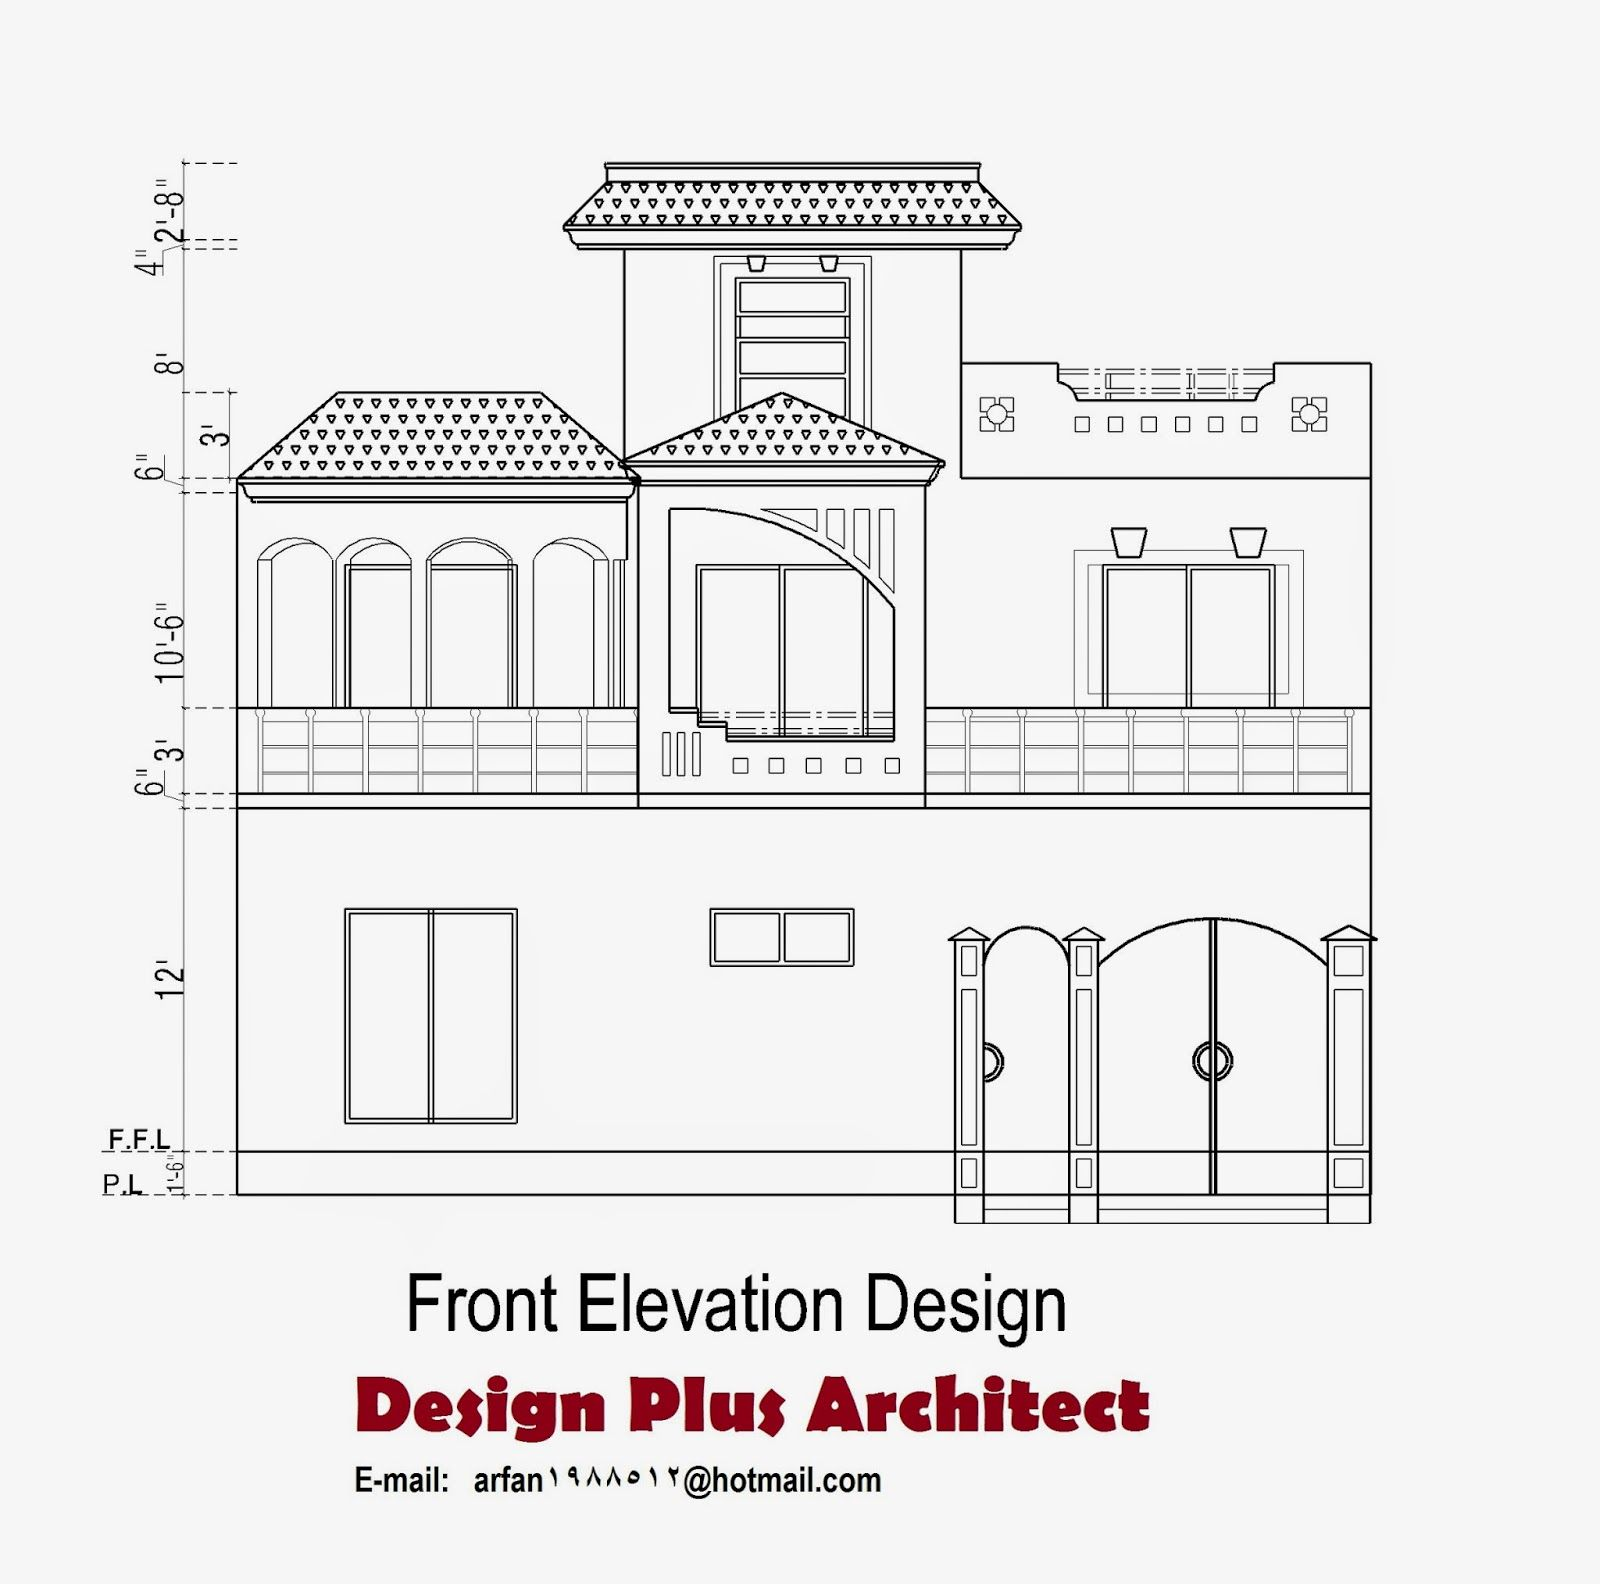 Marvelous Home Plans In Pakistan, Home 2d Plan, House Plans In Pakistan, House Plans  Pakistan, Home Designer, Floor Plans, 2d Home Elevation, 3d Home Elevation